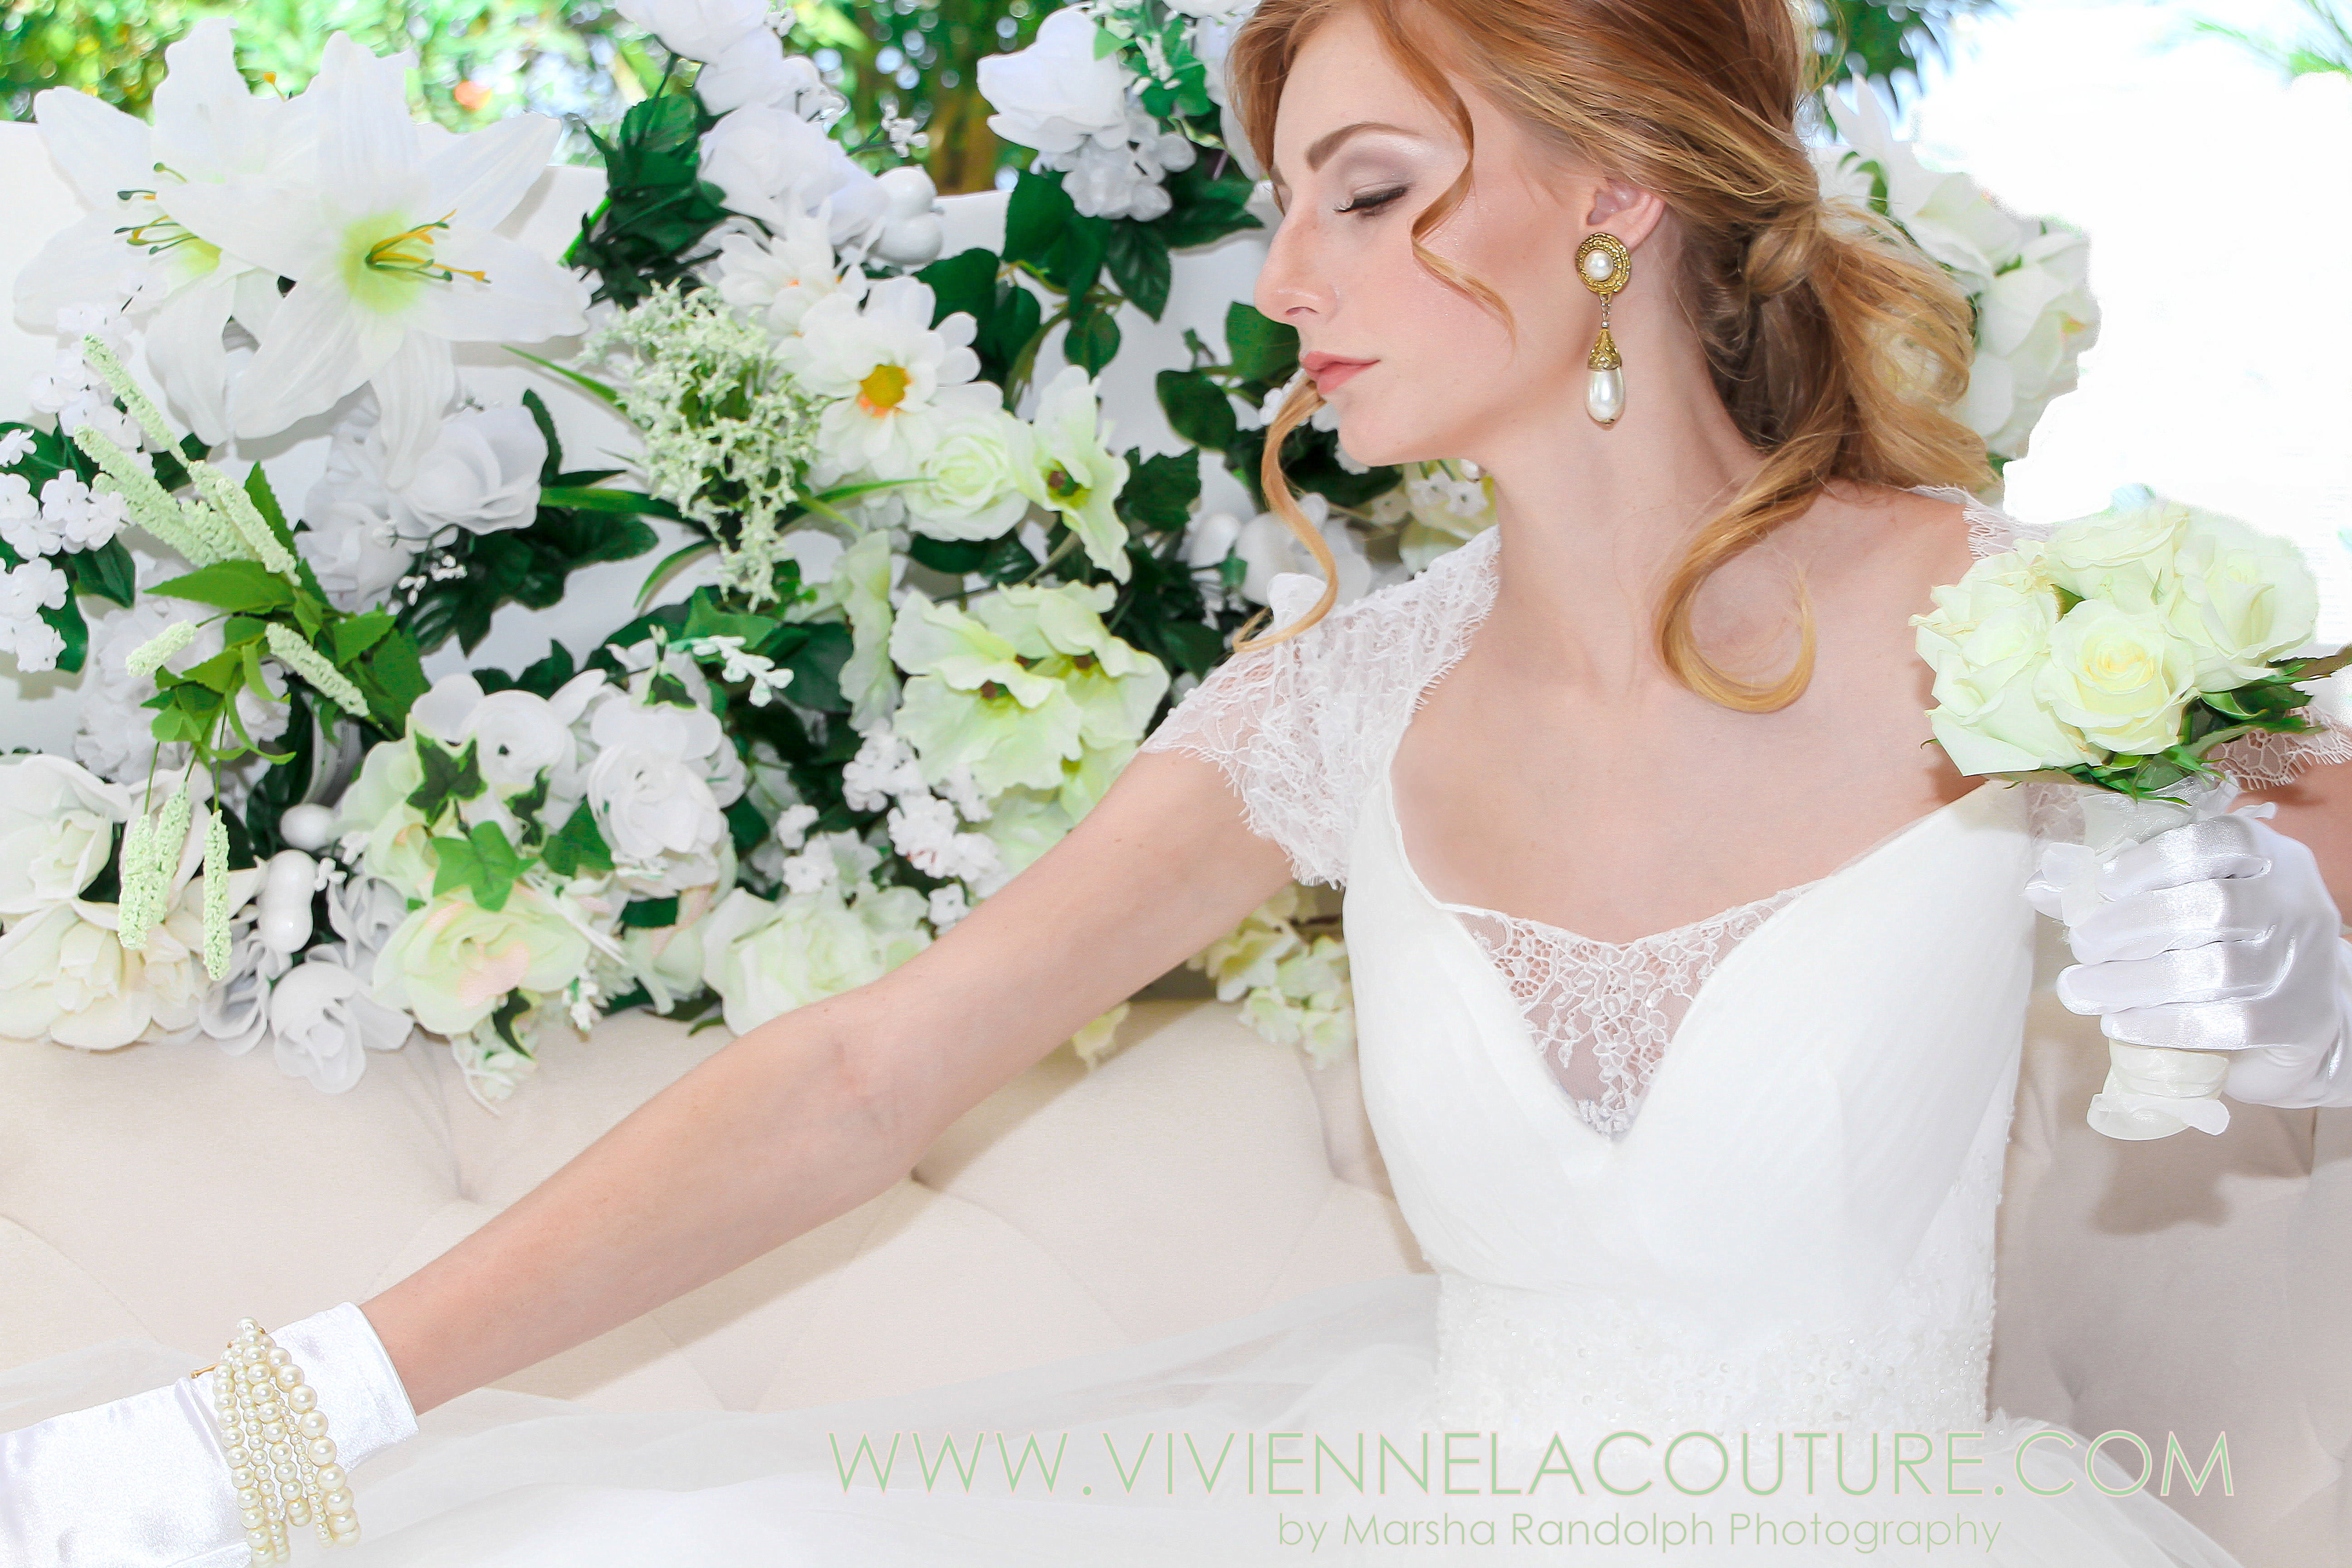 Vivienne Couture-105 by MR